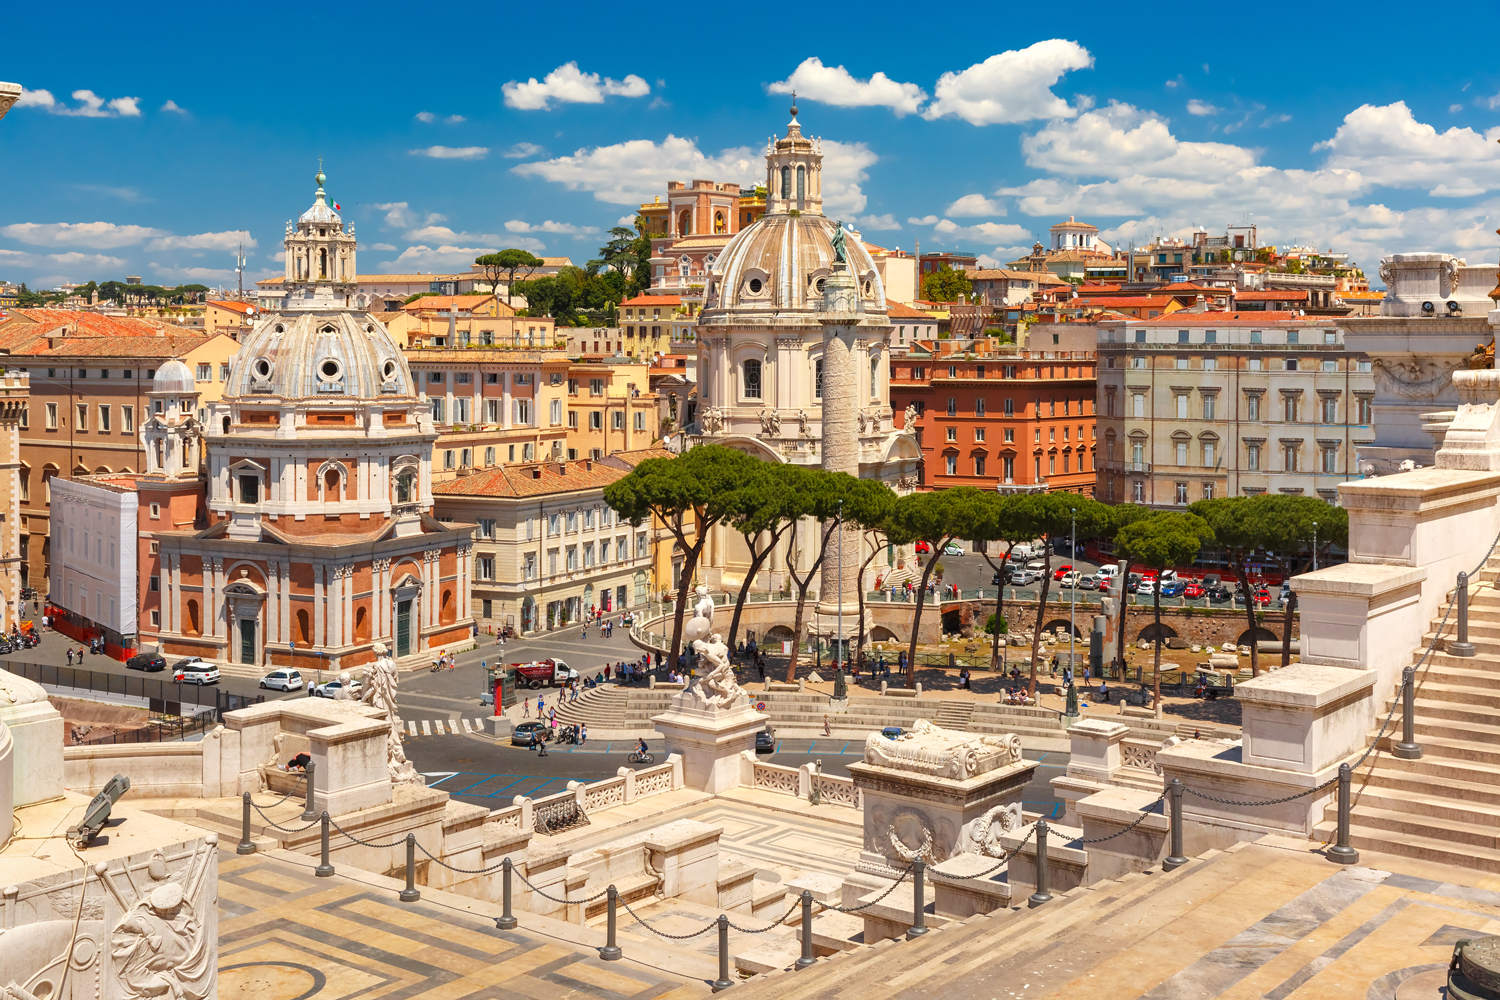 Ancient Trajan Forum in Rome, Italy